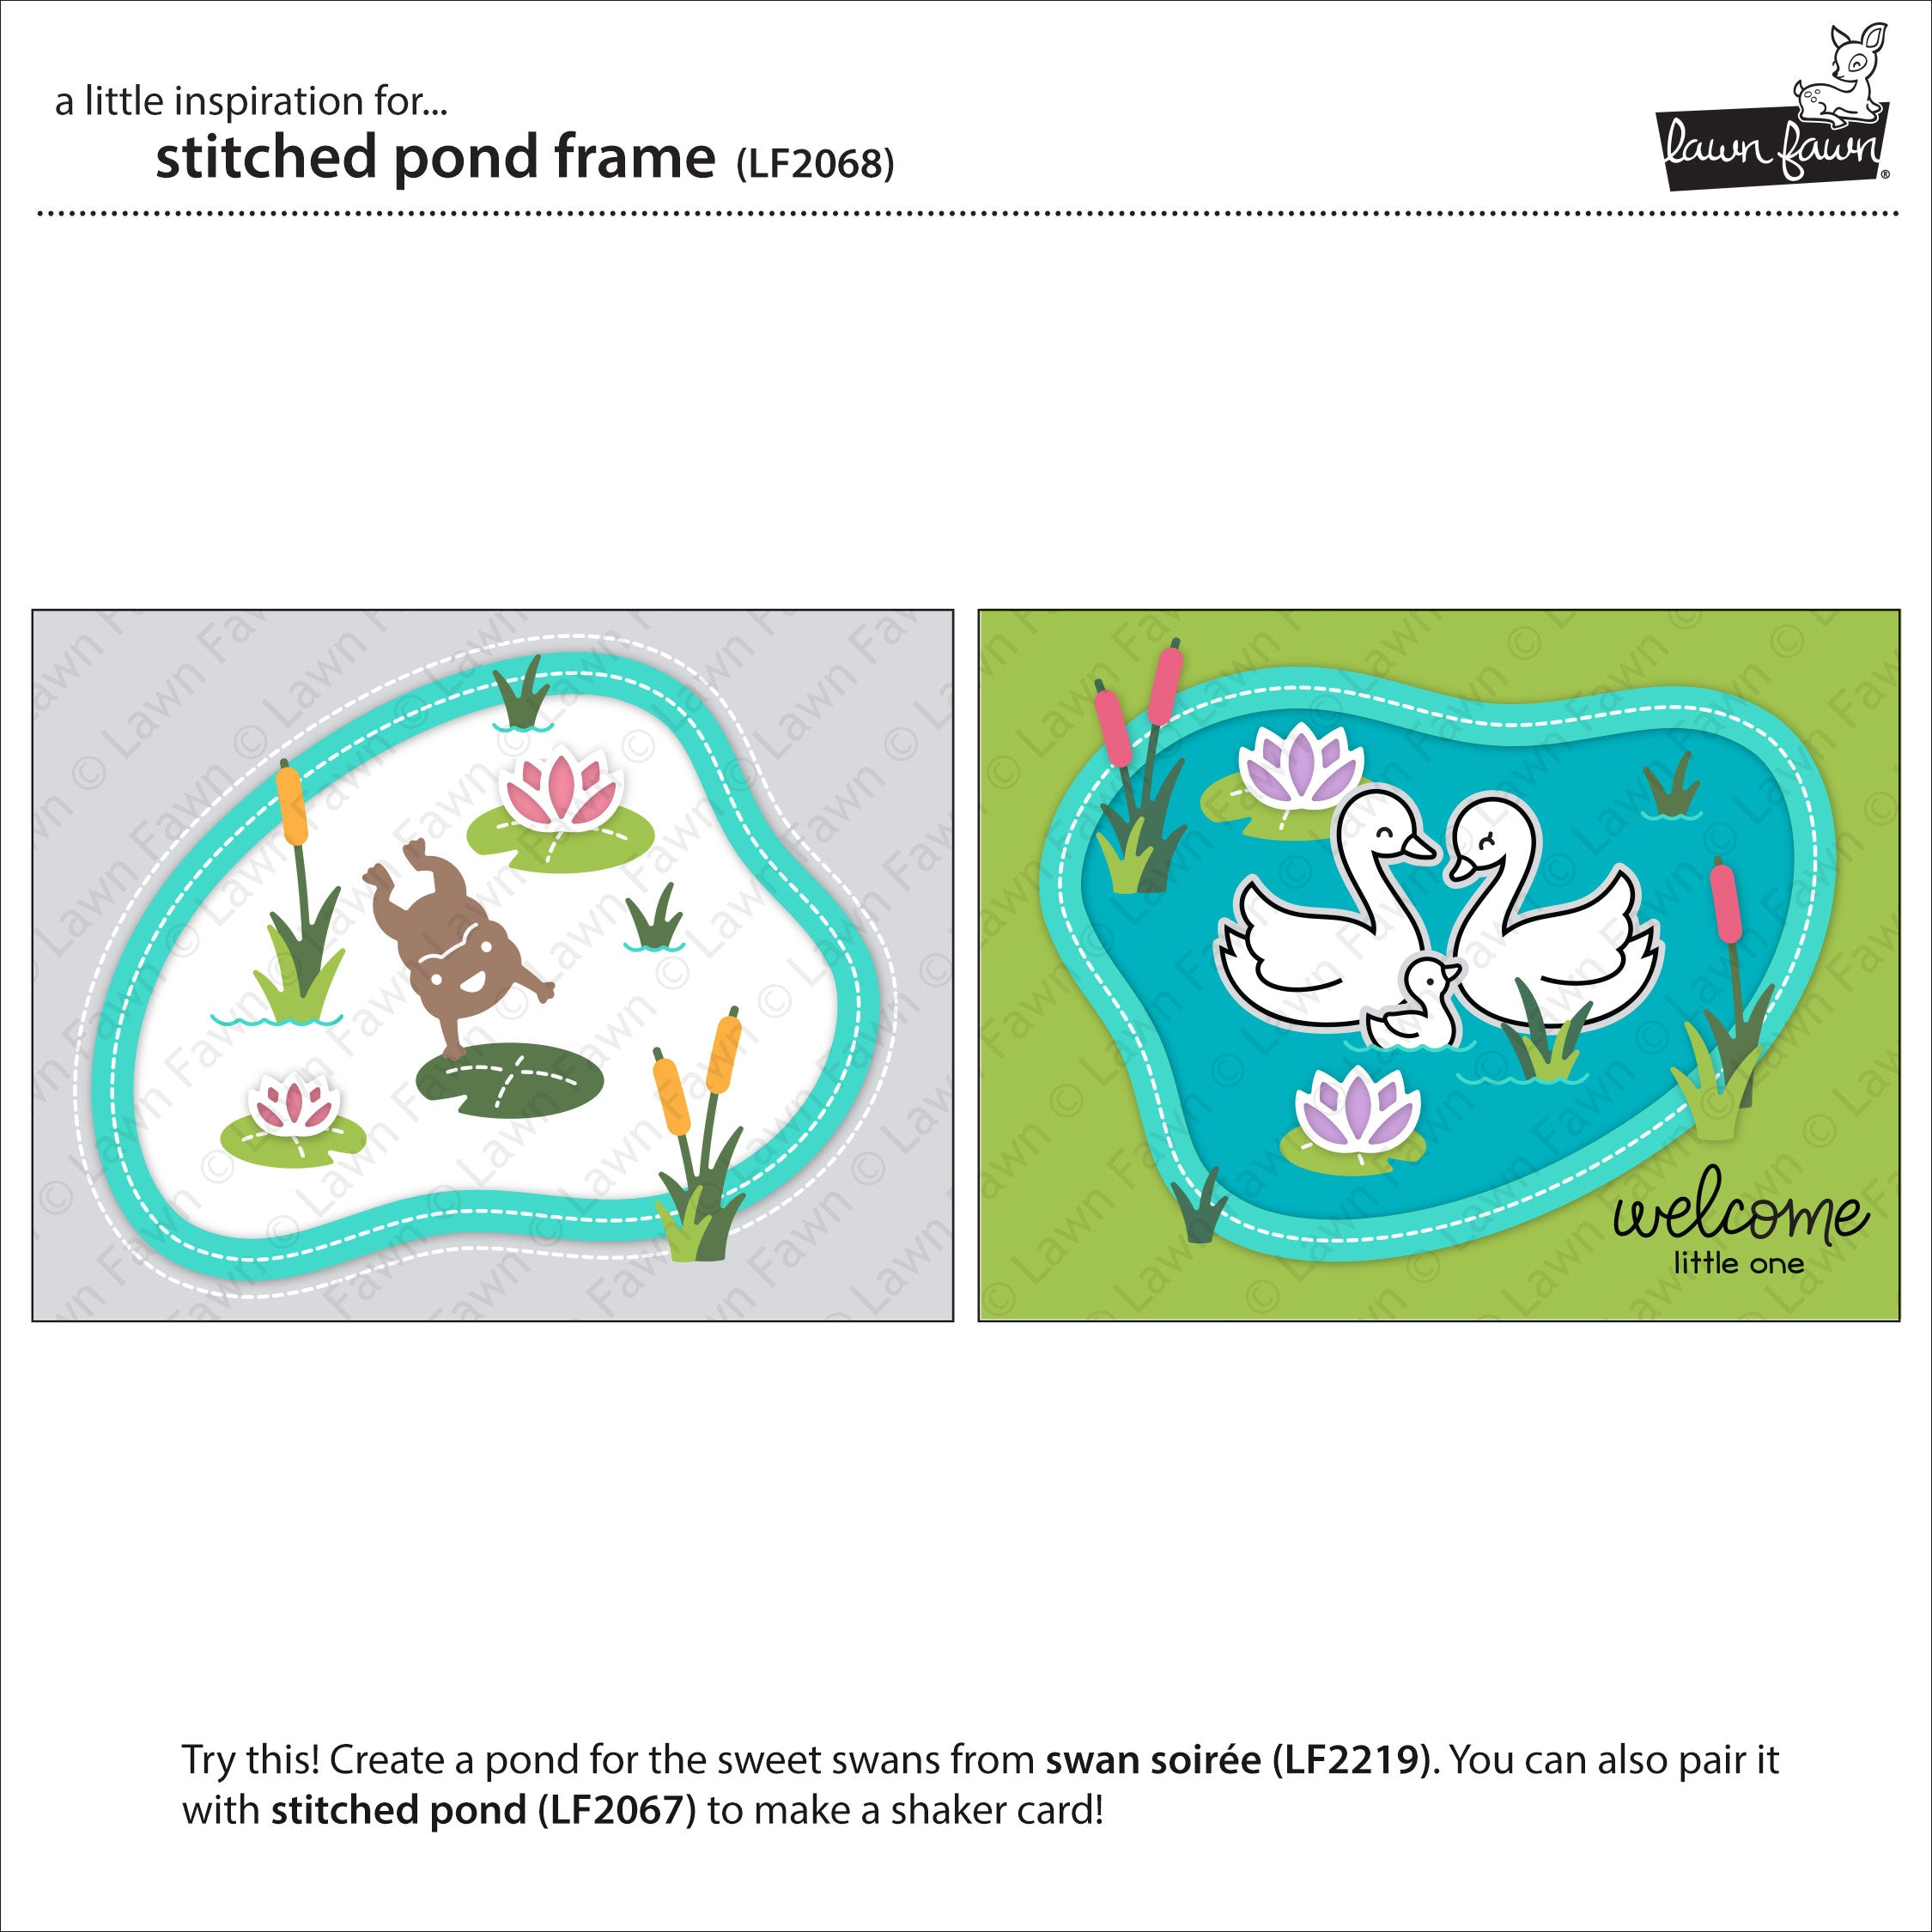 stitched pond frame